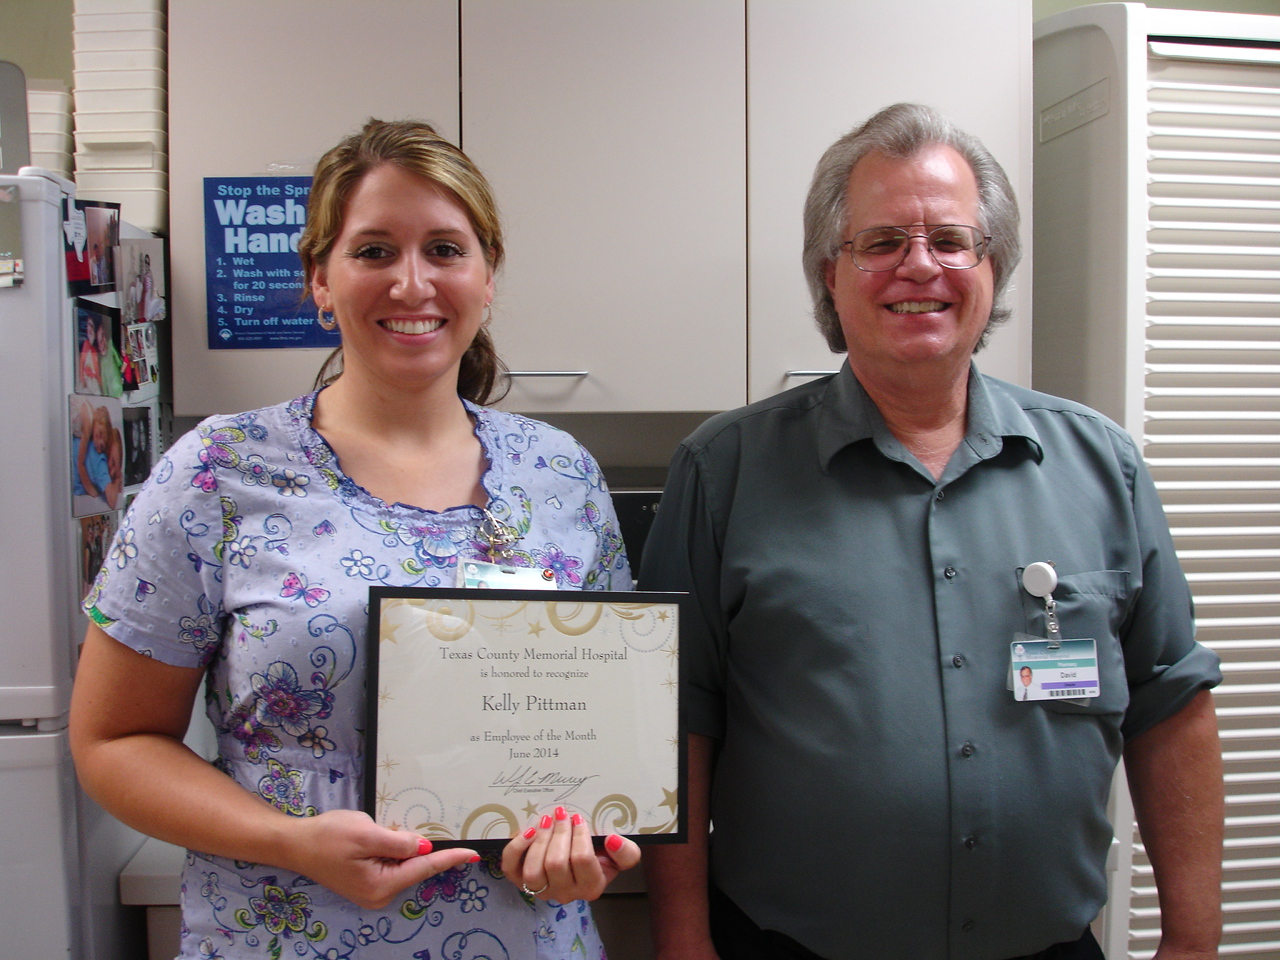 Kelly Pittman, Texas County Memorial Hospital June employee of the month, with her supervisor, David Phipps.